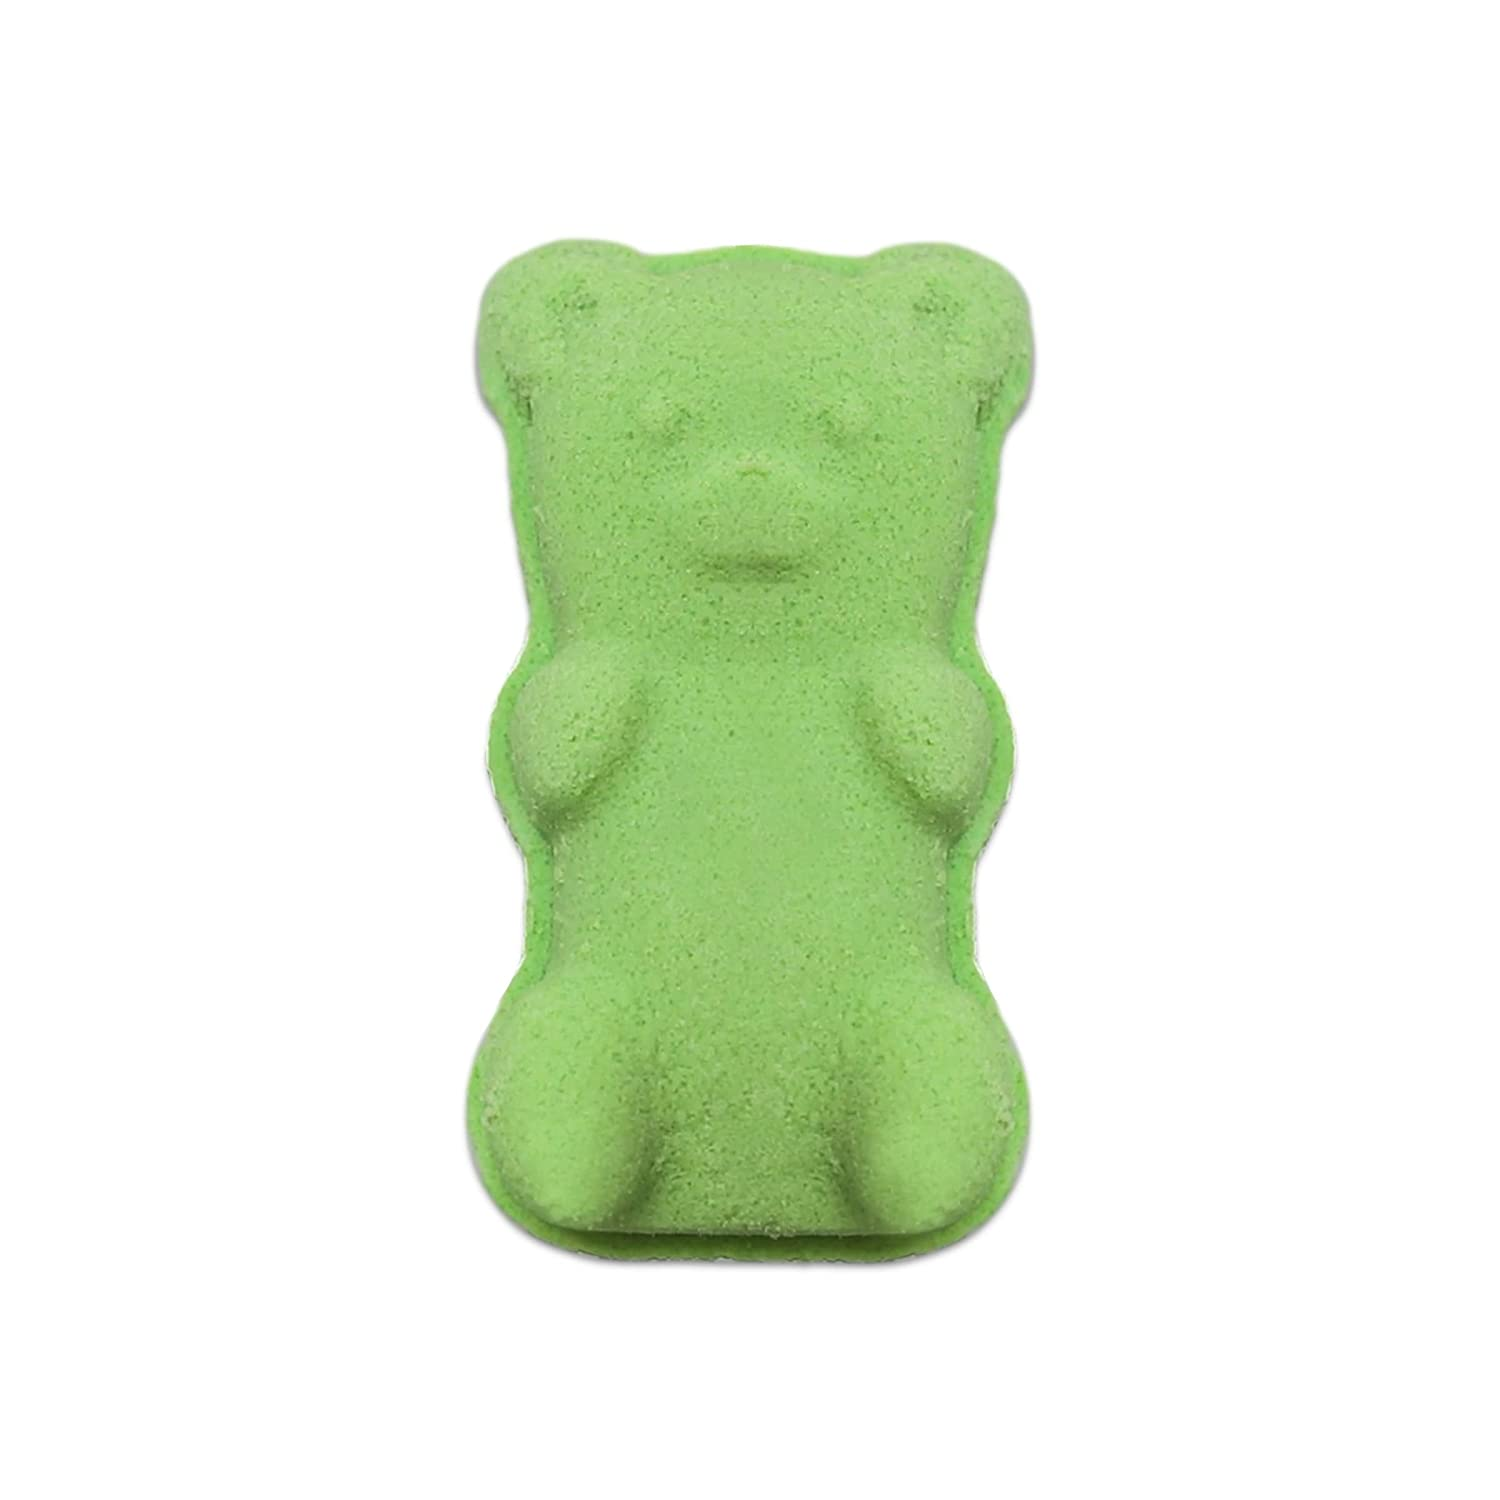 Rotten Gummy Bear Bath Bomb With - Clay Creepy Financial sales sale Worms New product! New type Ha Floating